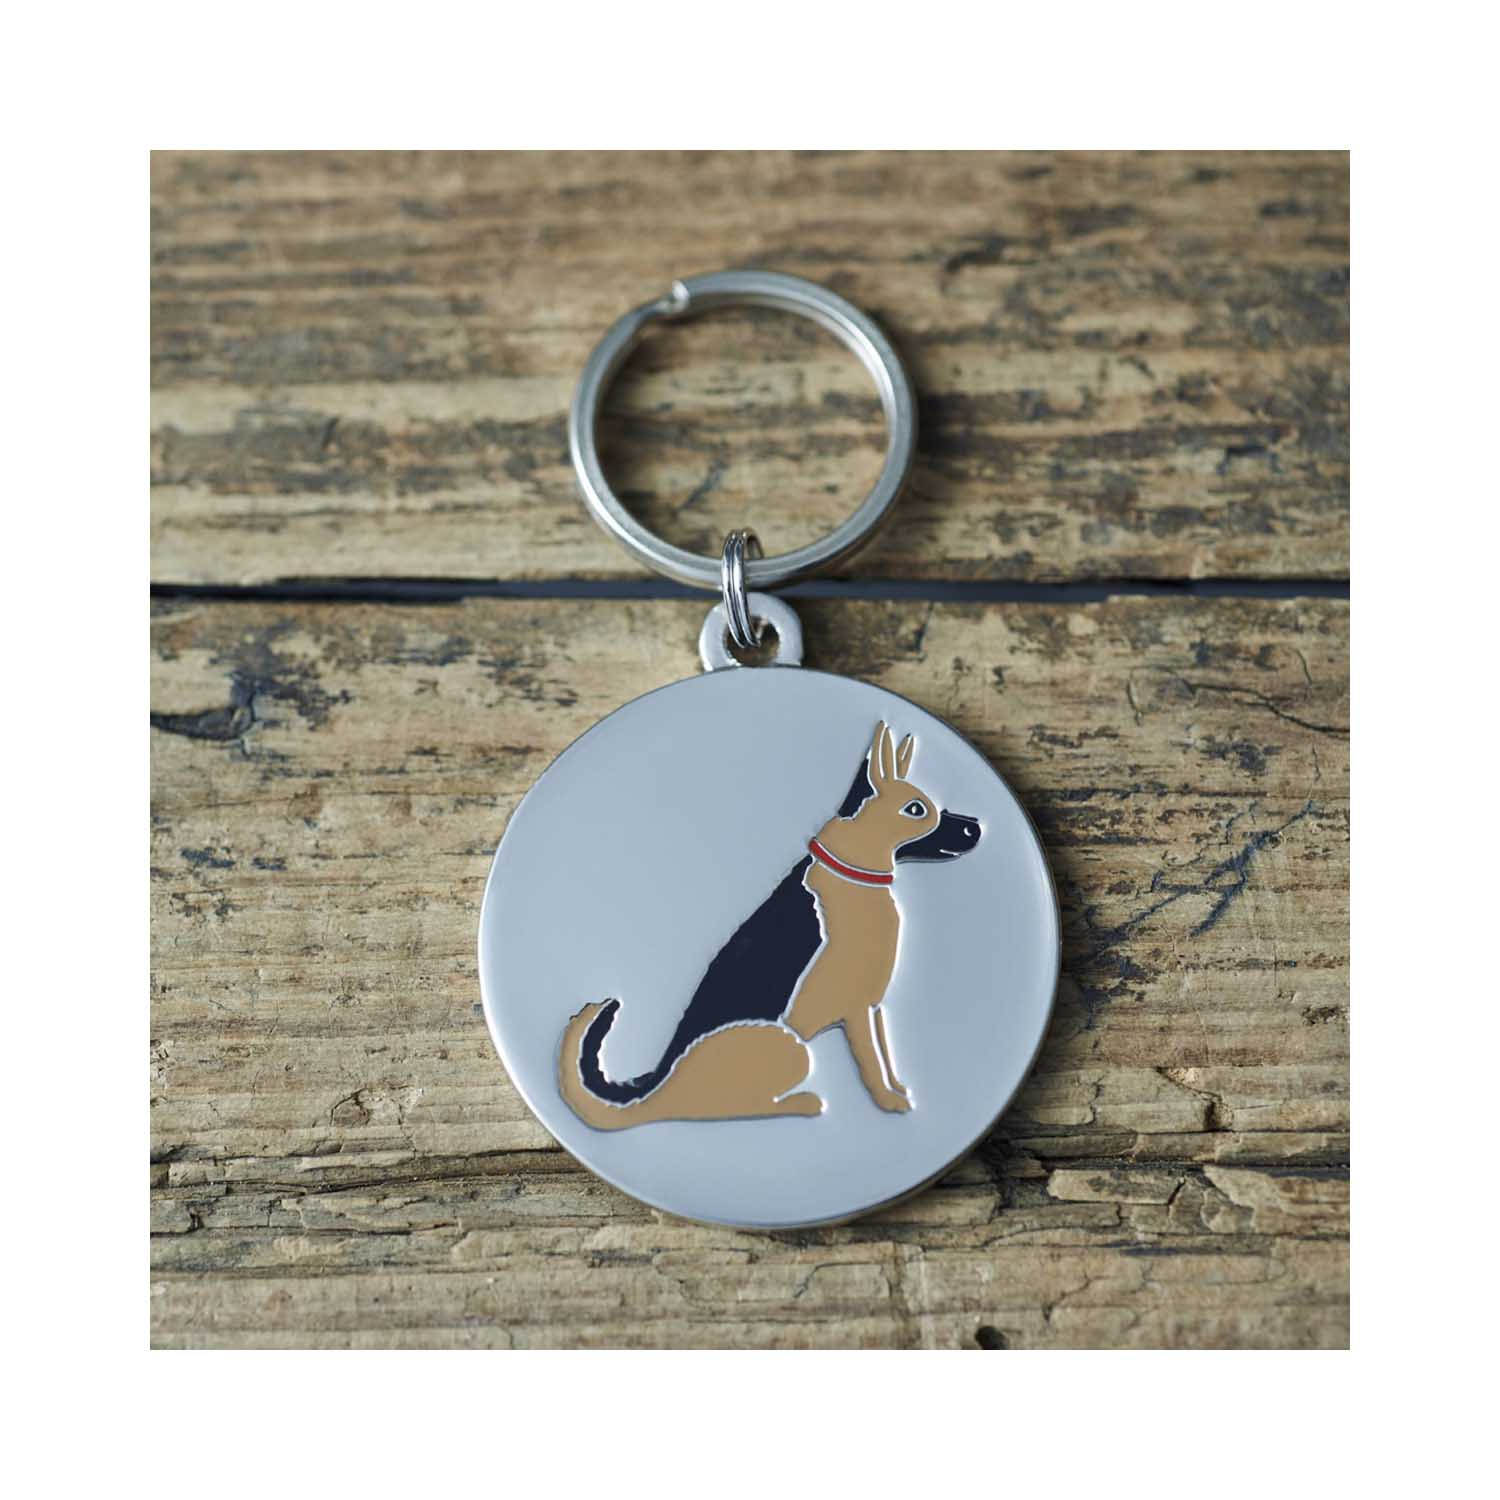 Dog Lover Gifts available at Dog Krazy Gifts - Sebastian The GSD Cufflink and Dog Tag Set - part of the Sweet William range available from DogKrazyGifts.co.uk